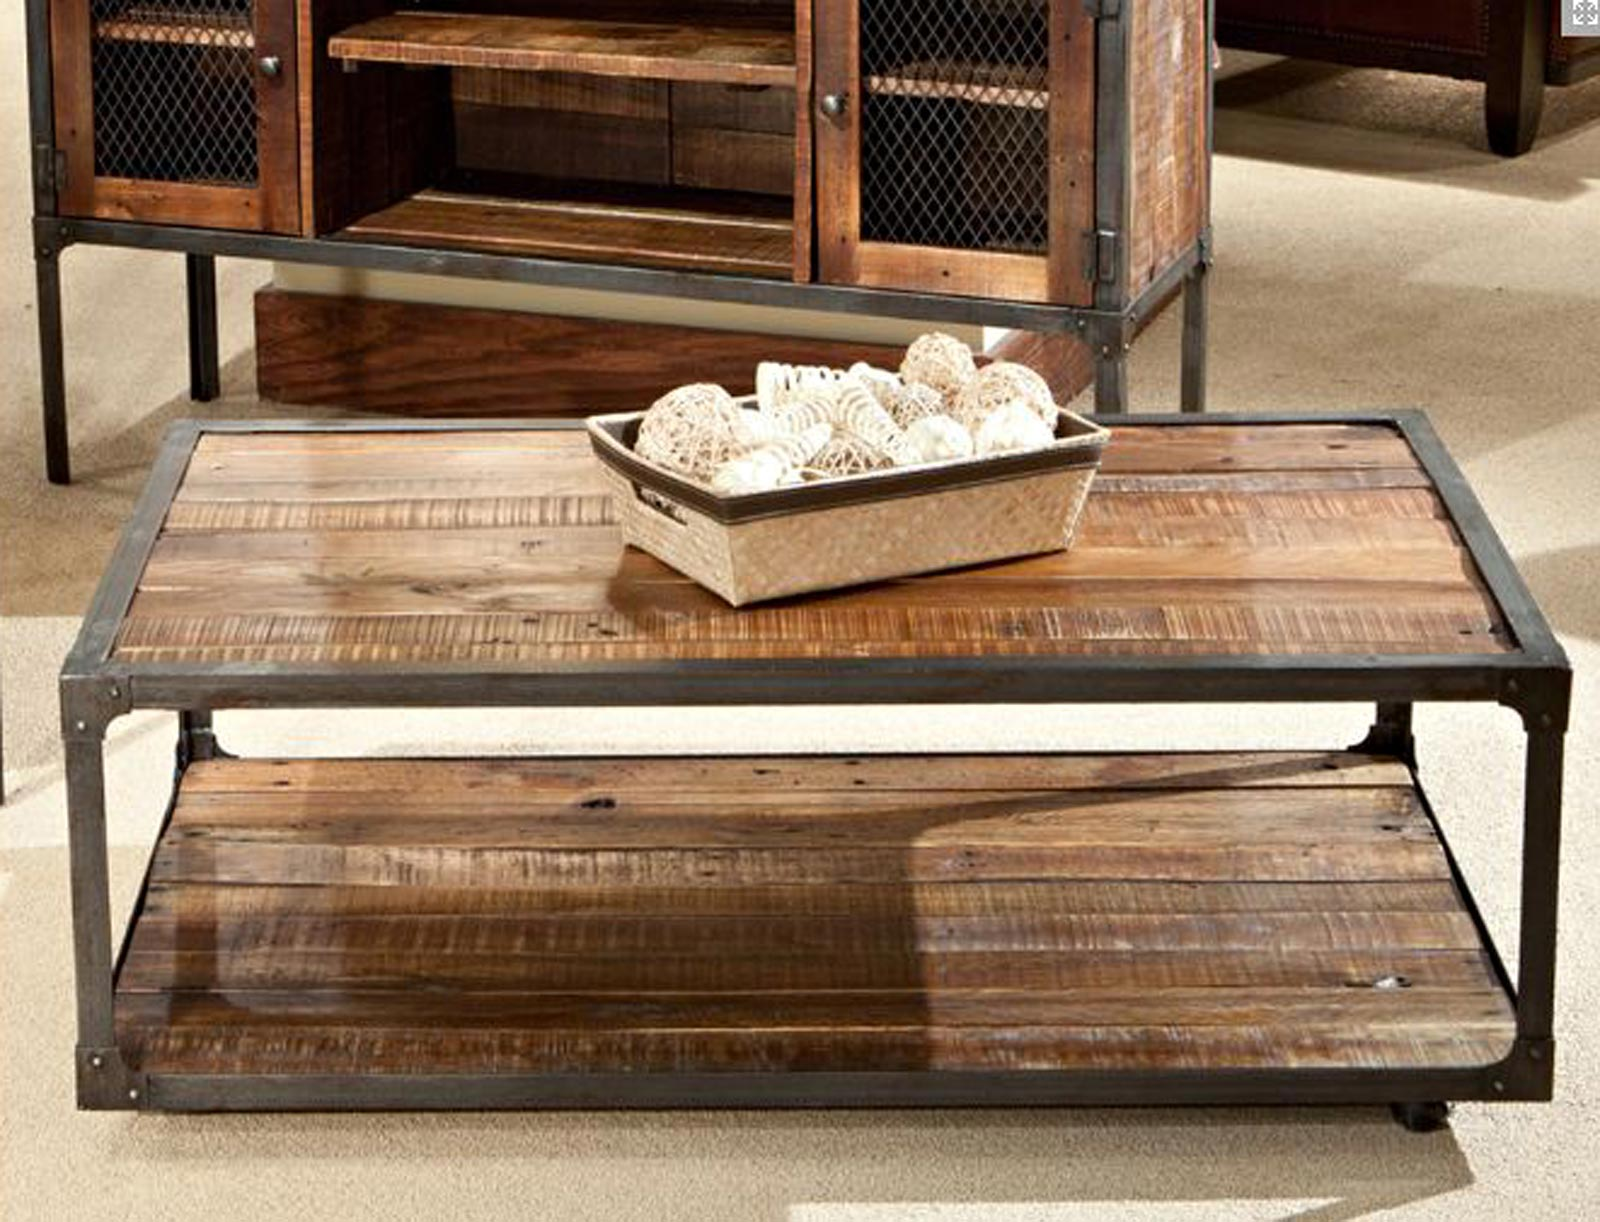 10 Best Ideas of Rustic Iron Coffee Table